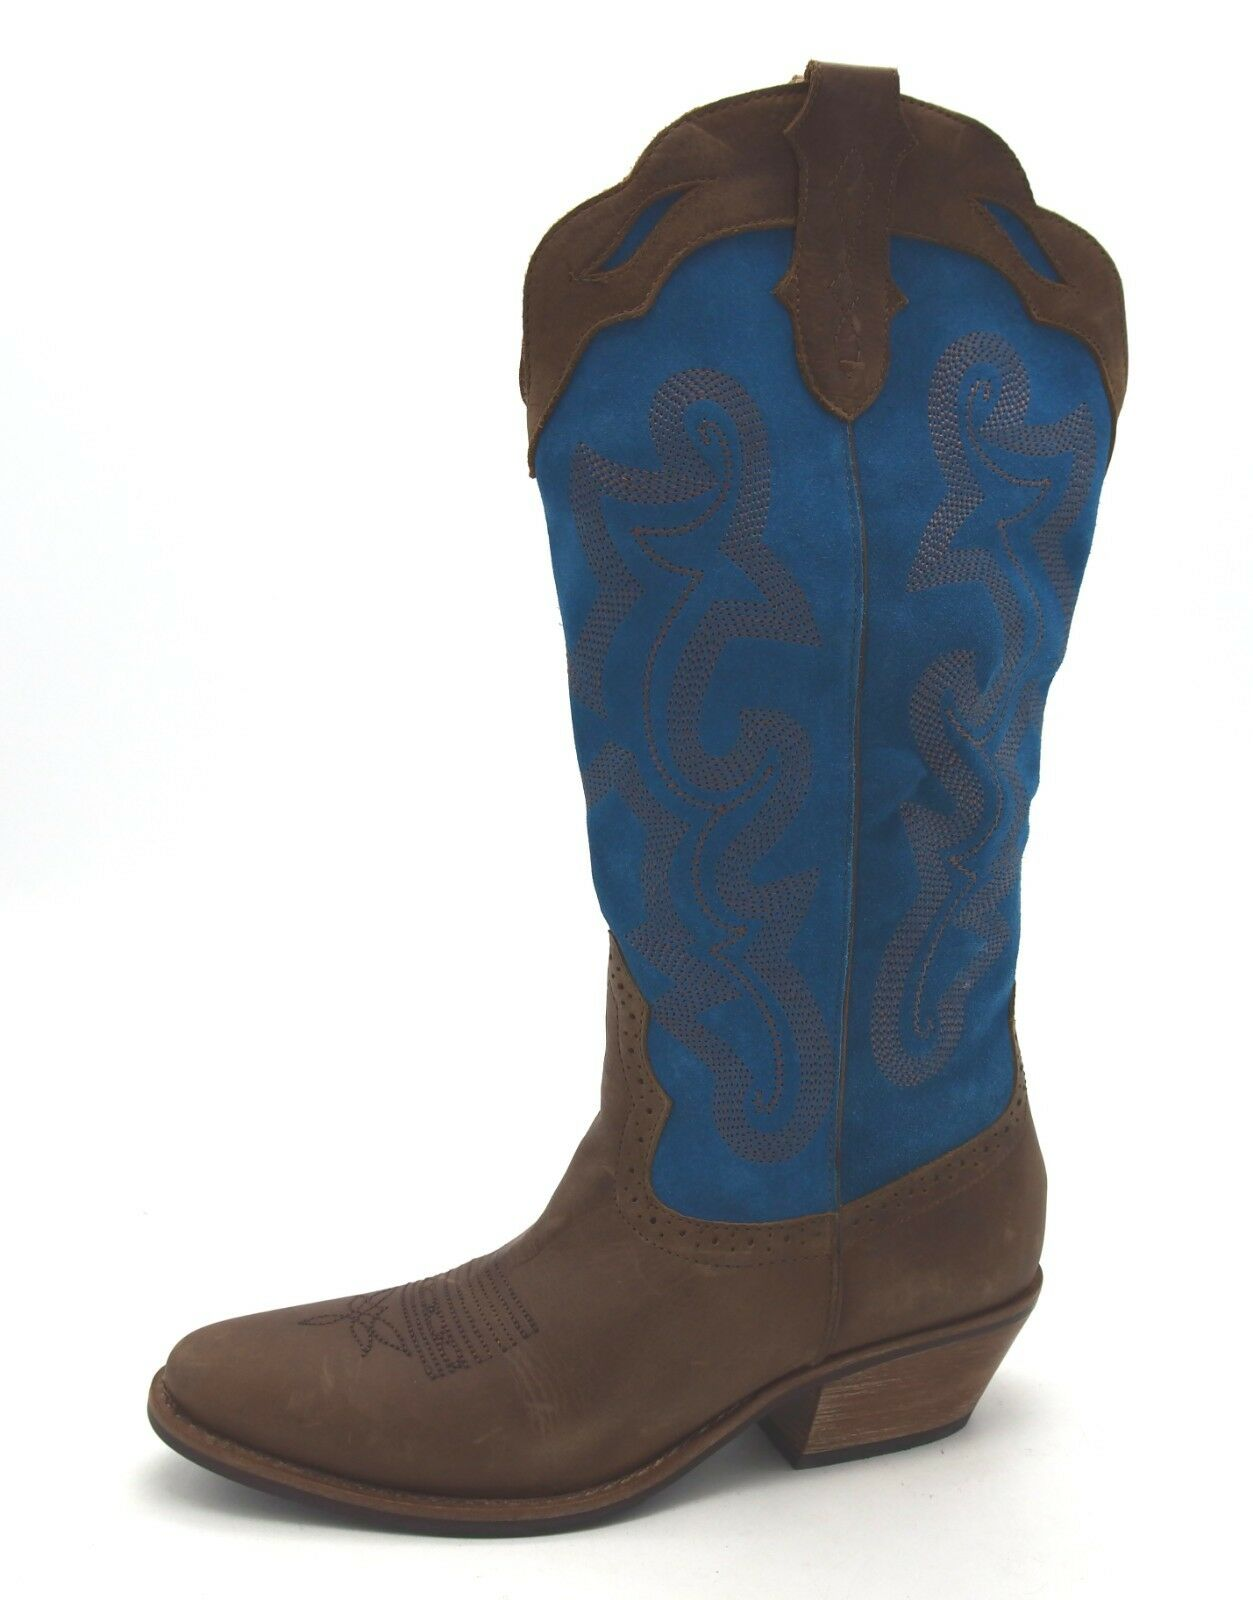 J6957 New Women's Diego Di Di Di Lucca Samara Brown Teal Leather Cowboy Boot 10 M e21e7b